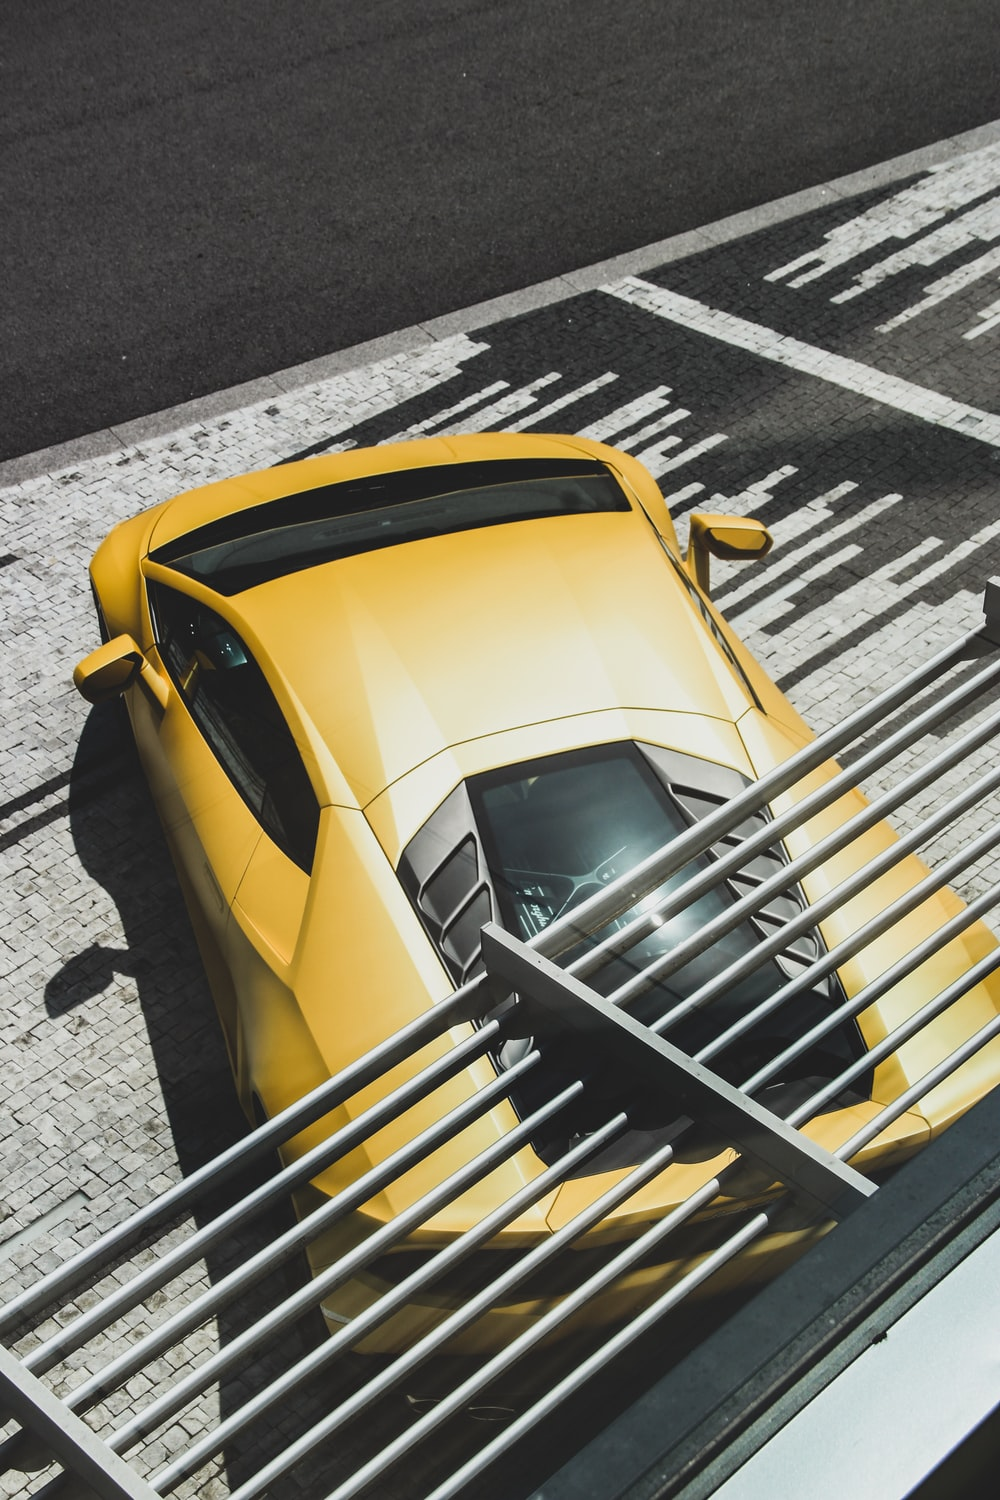 yellow and black Lamborghini coupe